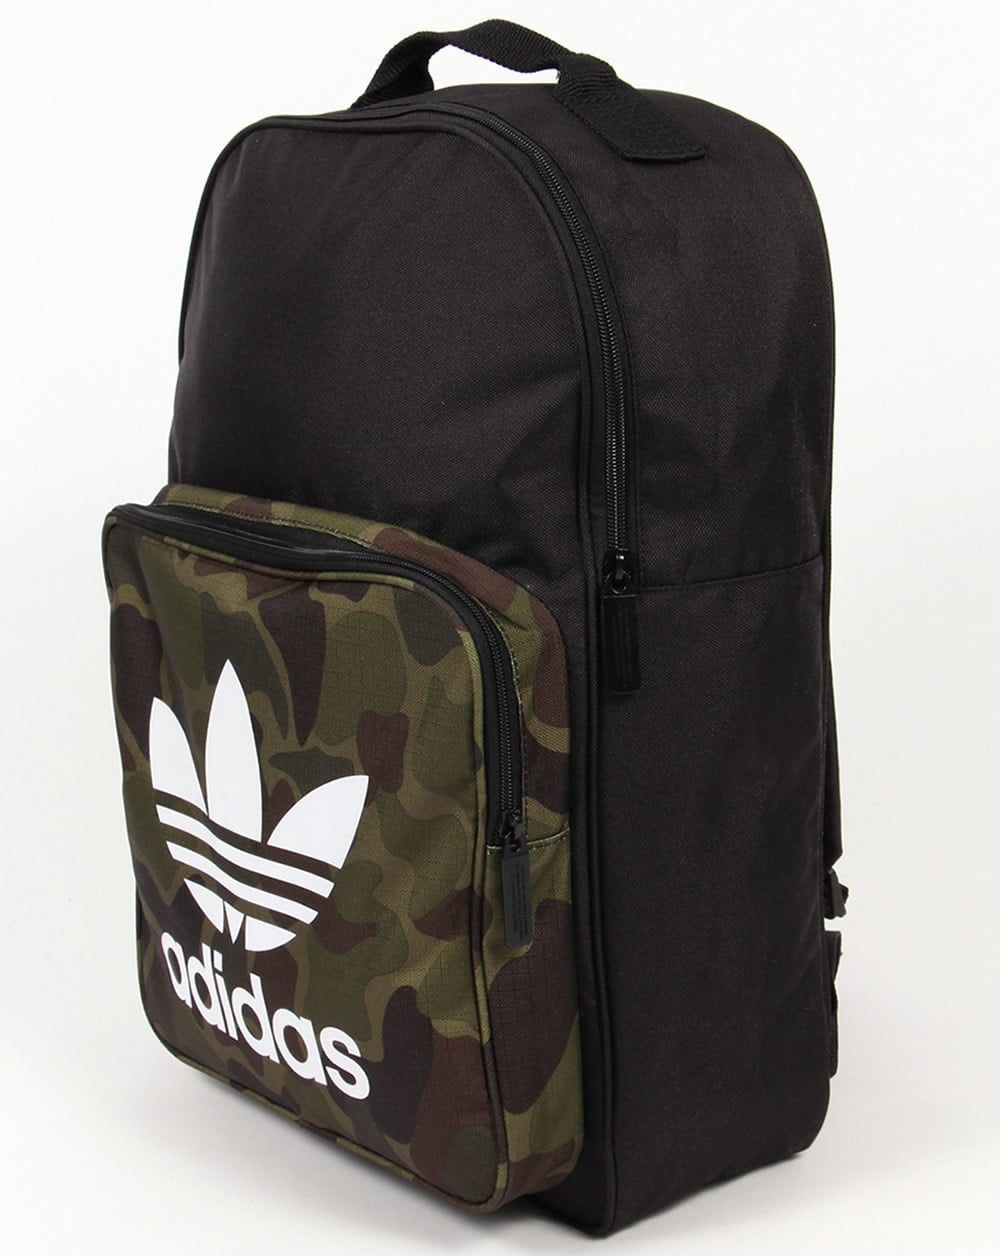 7852762bc870 Buy retro adidas backpack   OFF49% Discounted